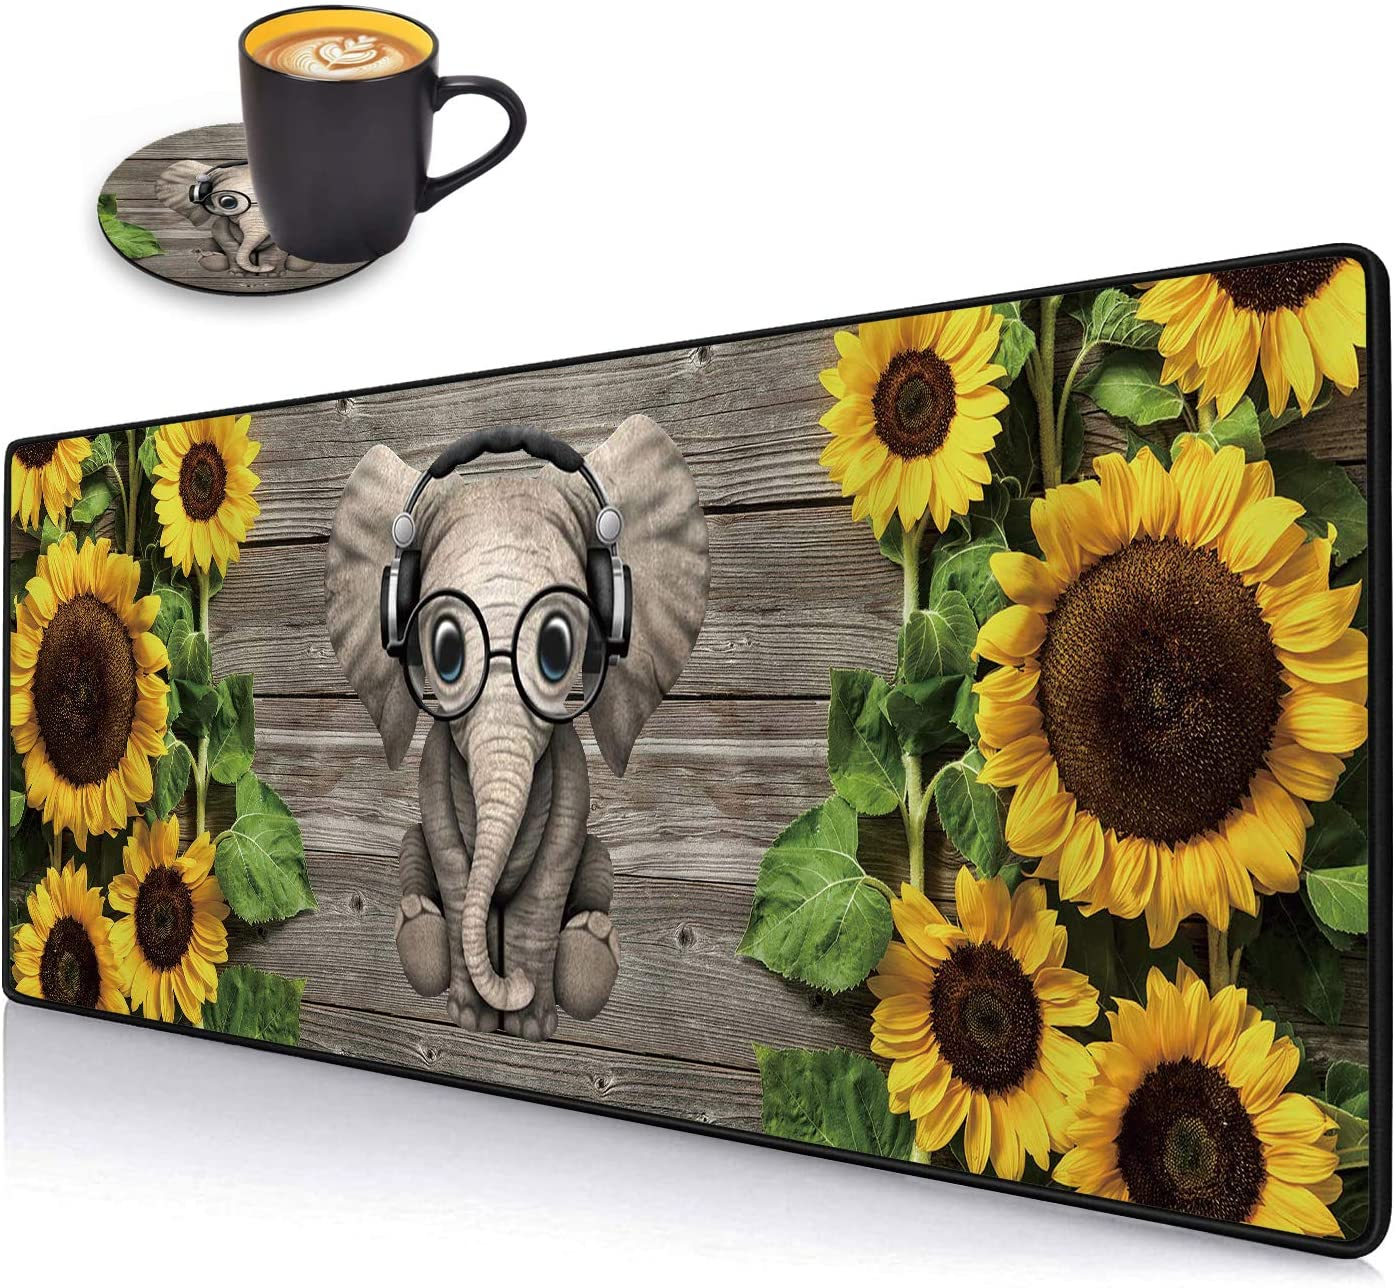 Desk Pad Mat Gaming Mouse Pads with Coasters Set, Stitched Edges Design Mouse Pad XXL Large Mouse Pad for Laptop Computers Sunflower and Elephant Desk Writing Mat for Office & Home 31.5